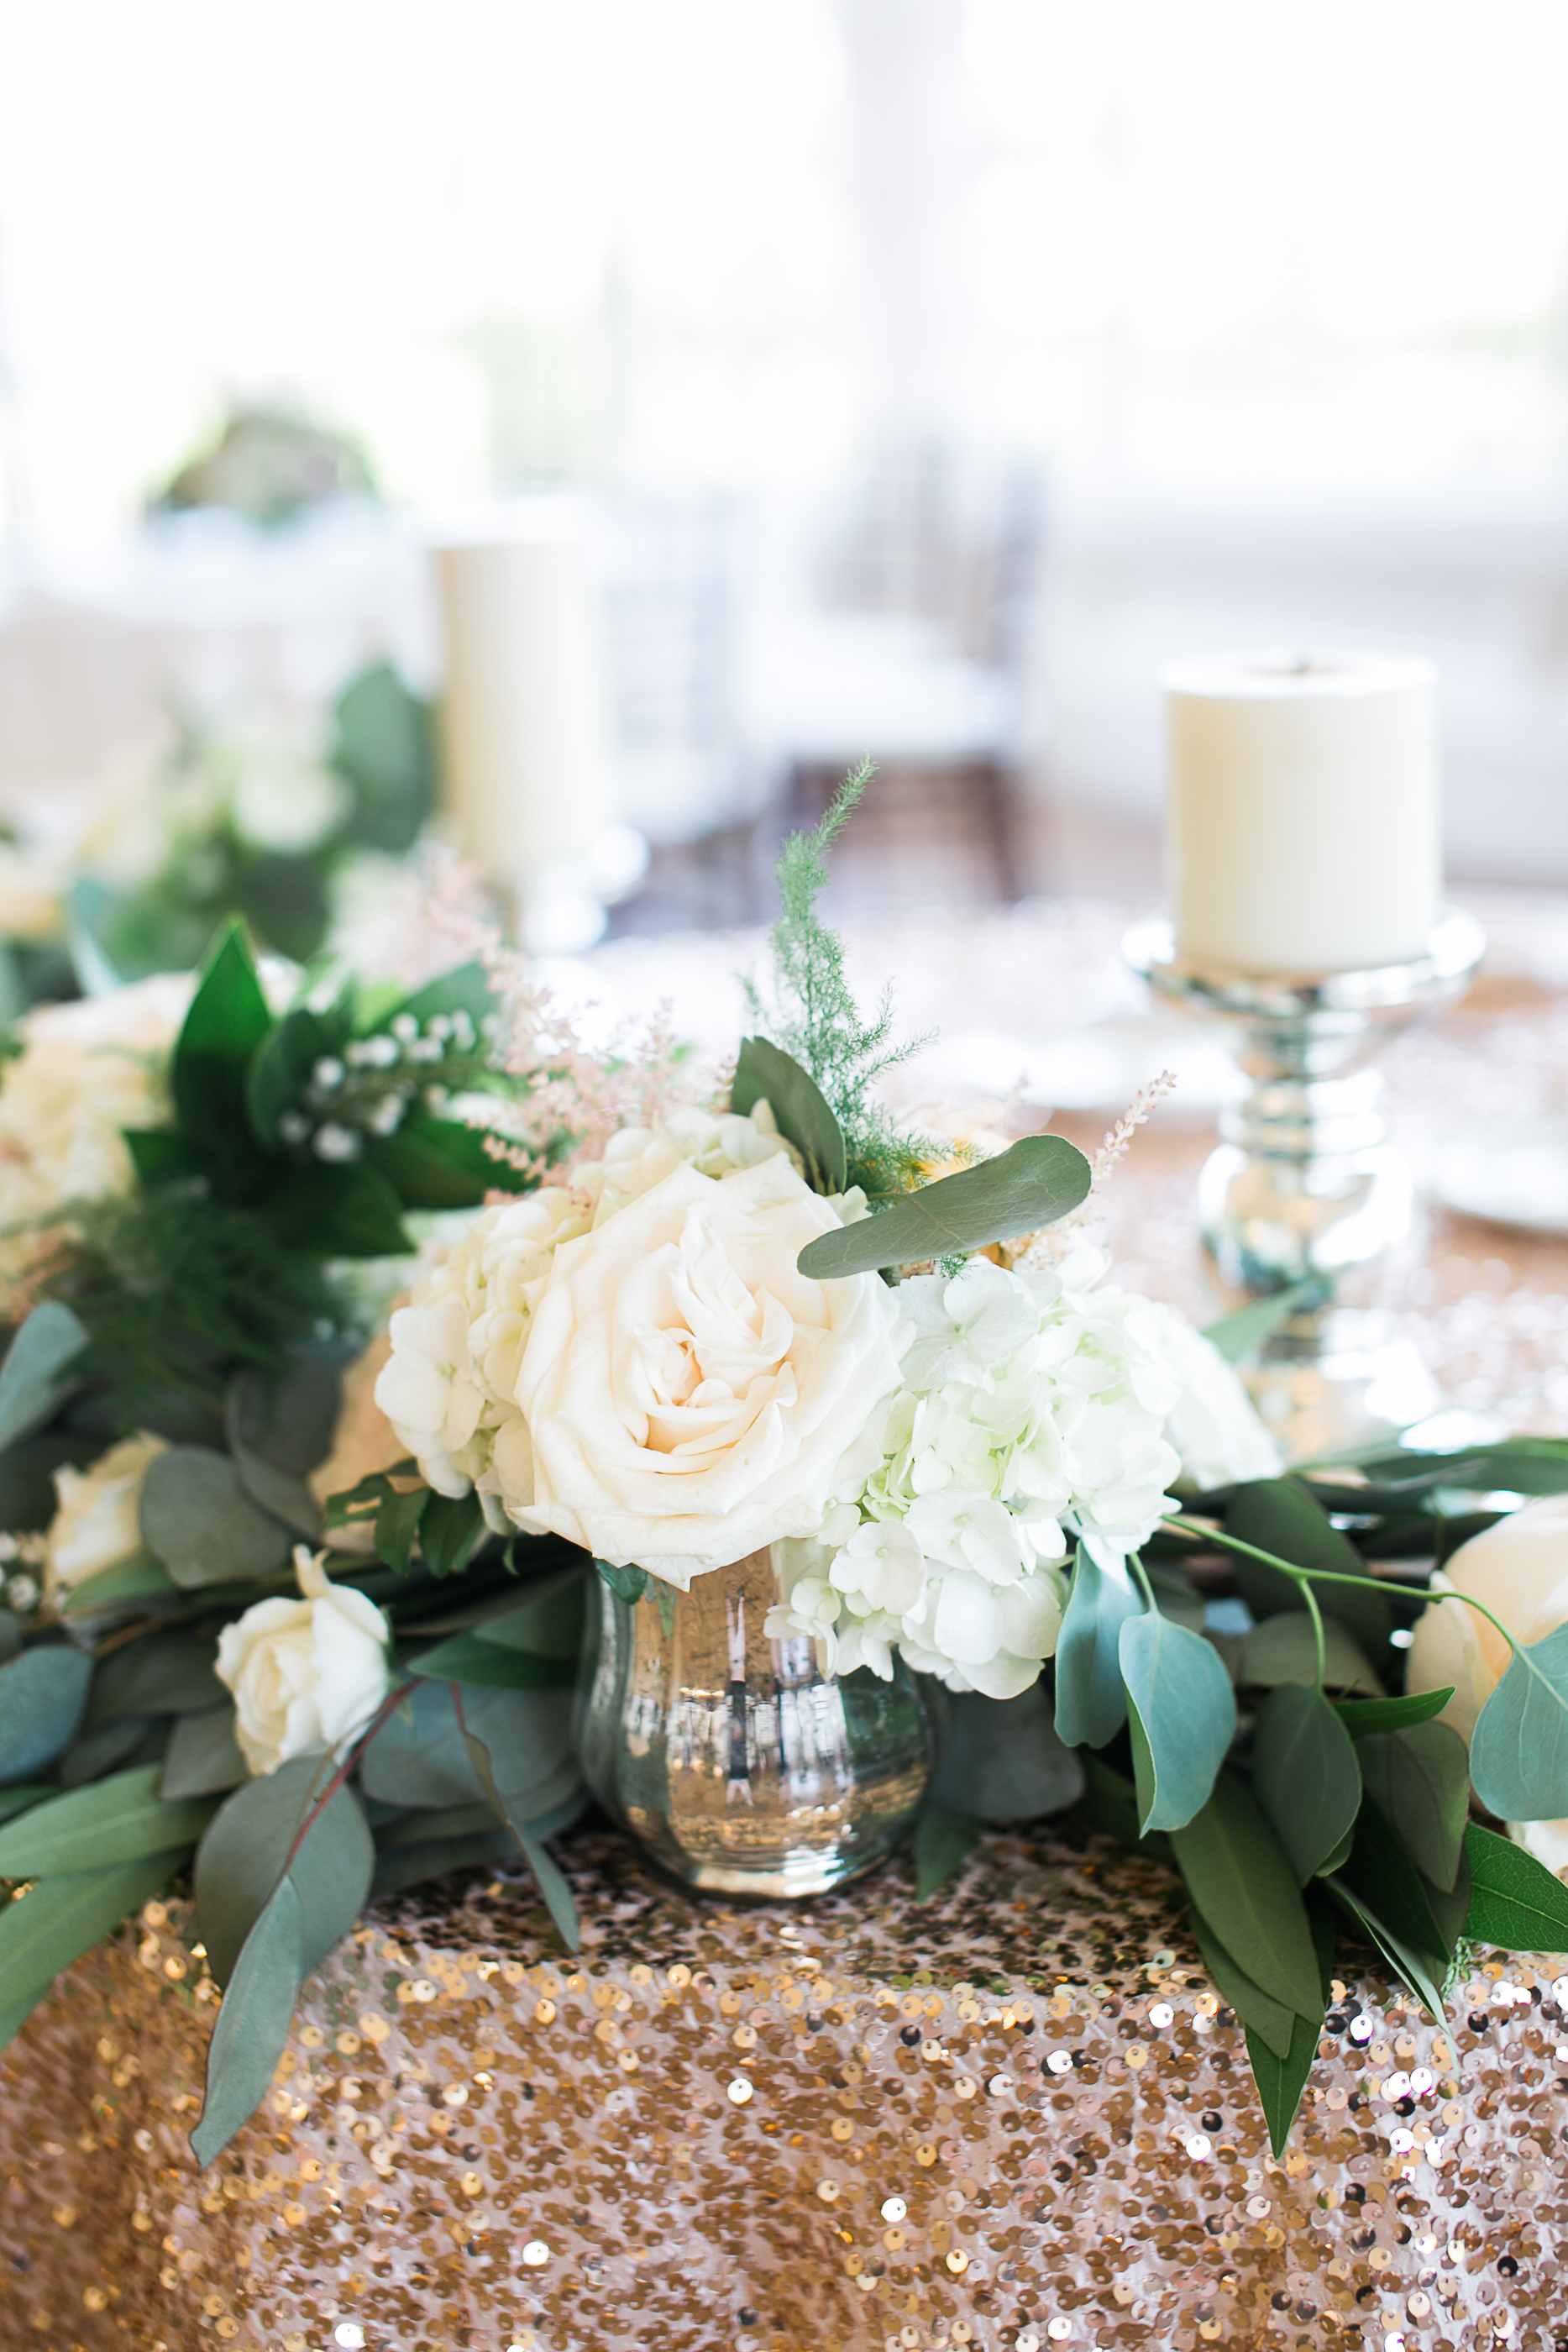 Blush & ivory, garden romantic wedding by San Diego wedding florist, Compass Floral.  Brandi Welles Photography. Gold sequin sweetheart table.